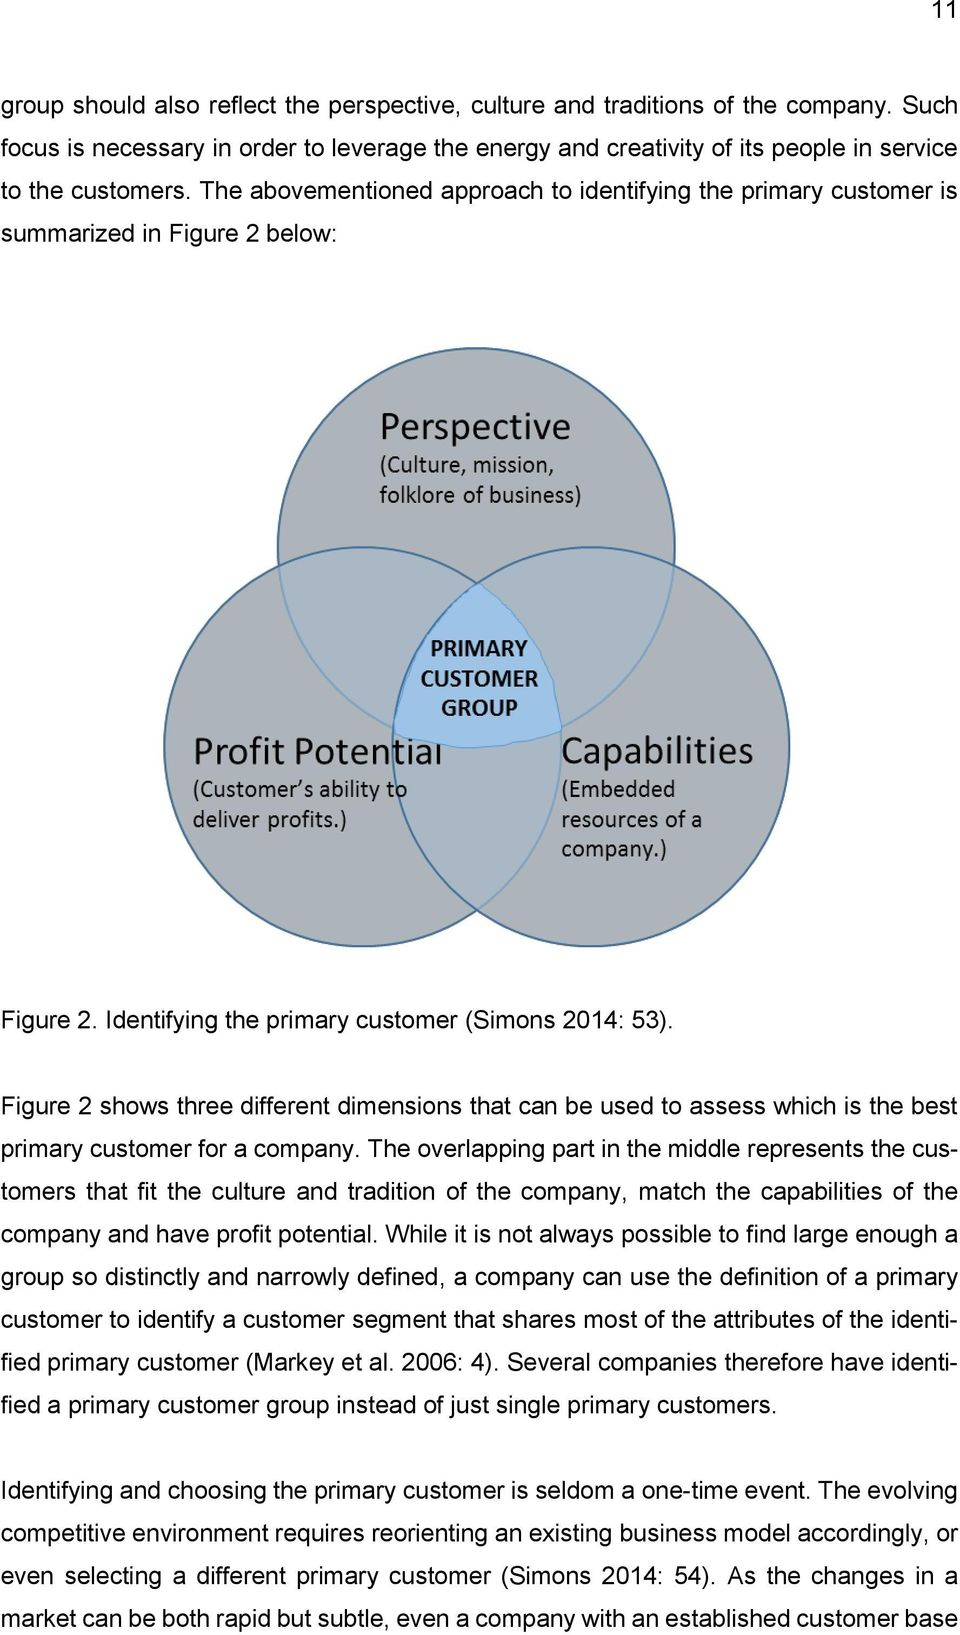 Figure 2 shows three different dimensions that can be used to assess which is the best primary customer for a company.